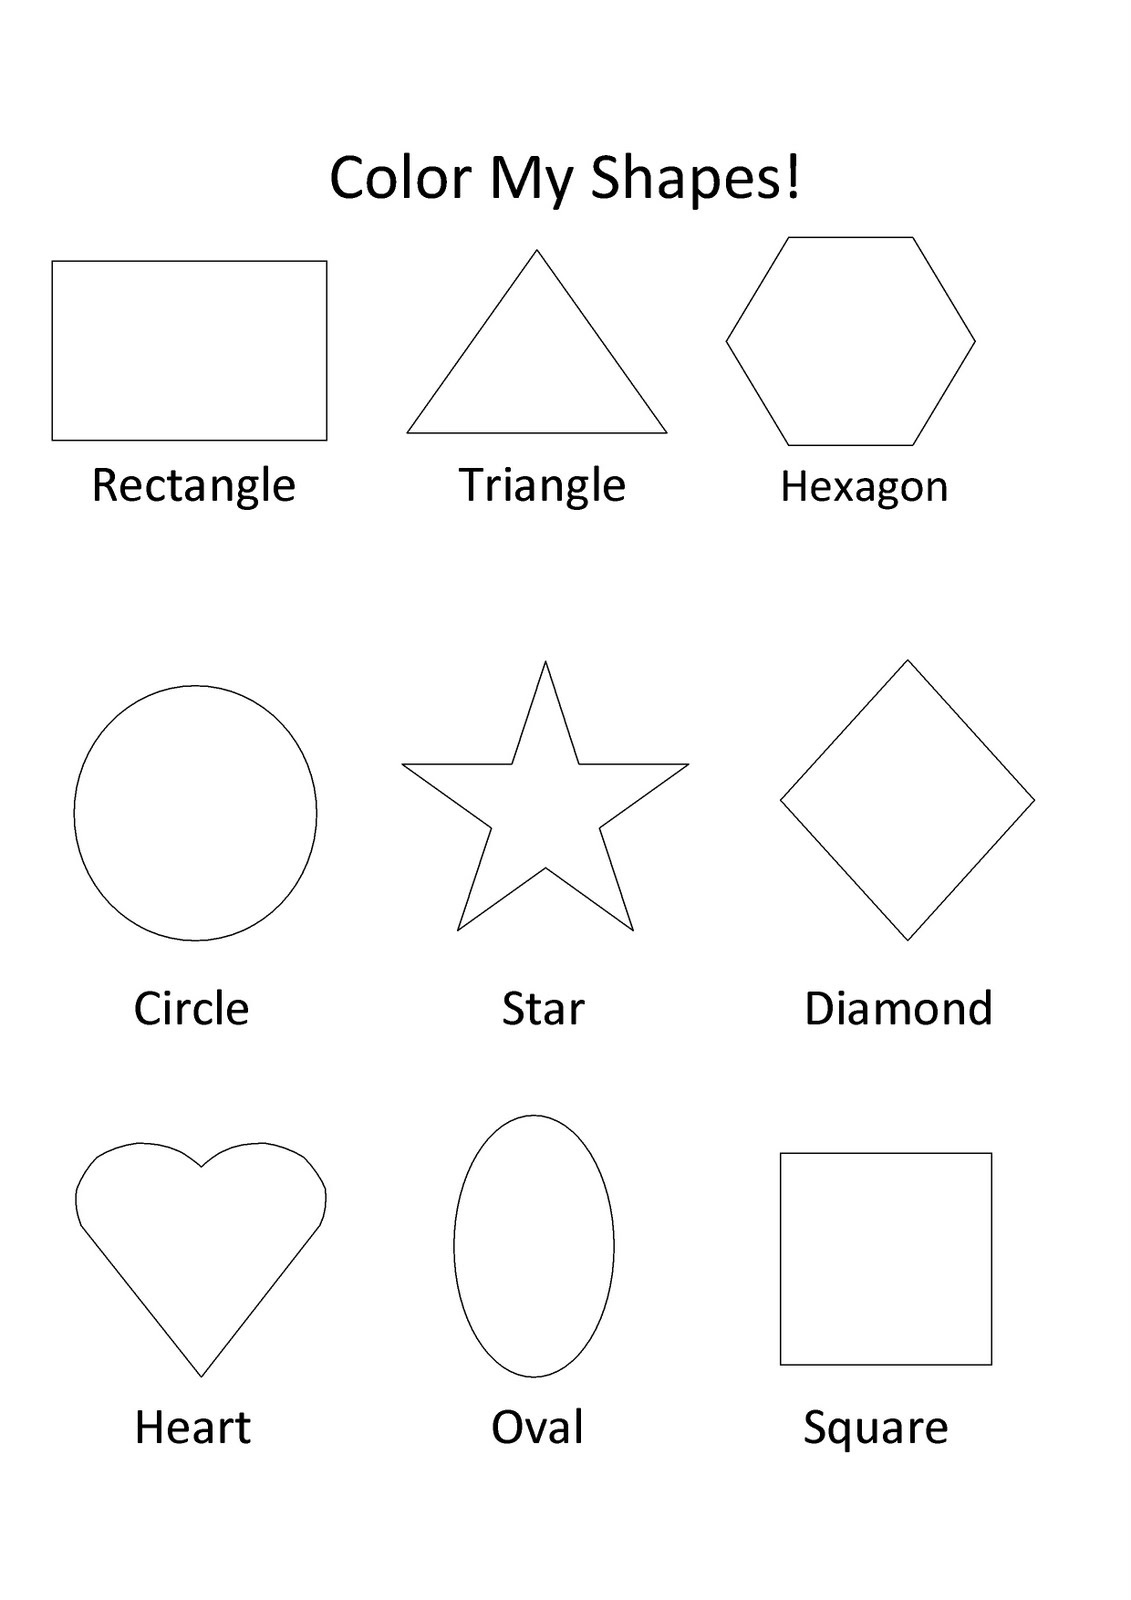 shapes-coloring-pages-3